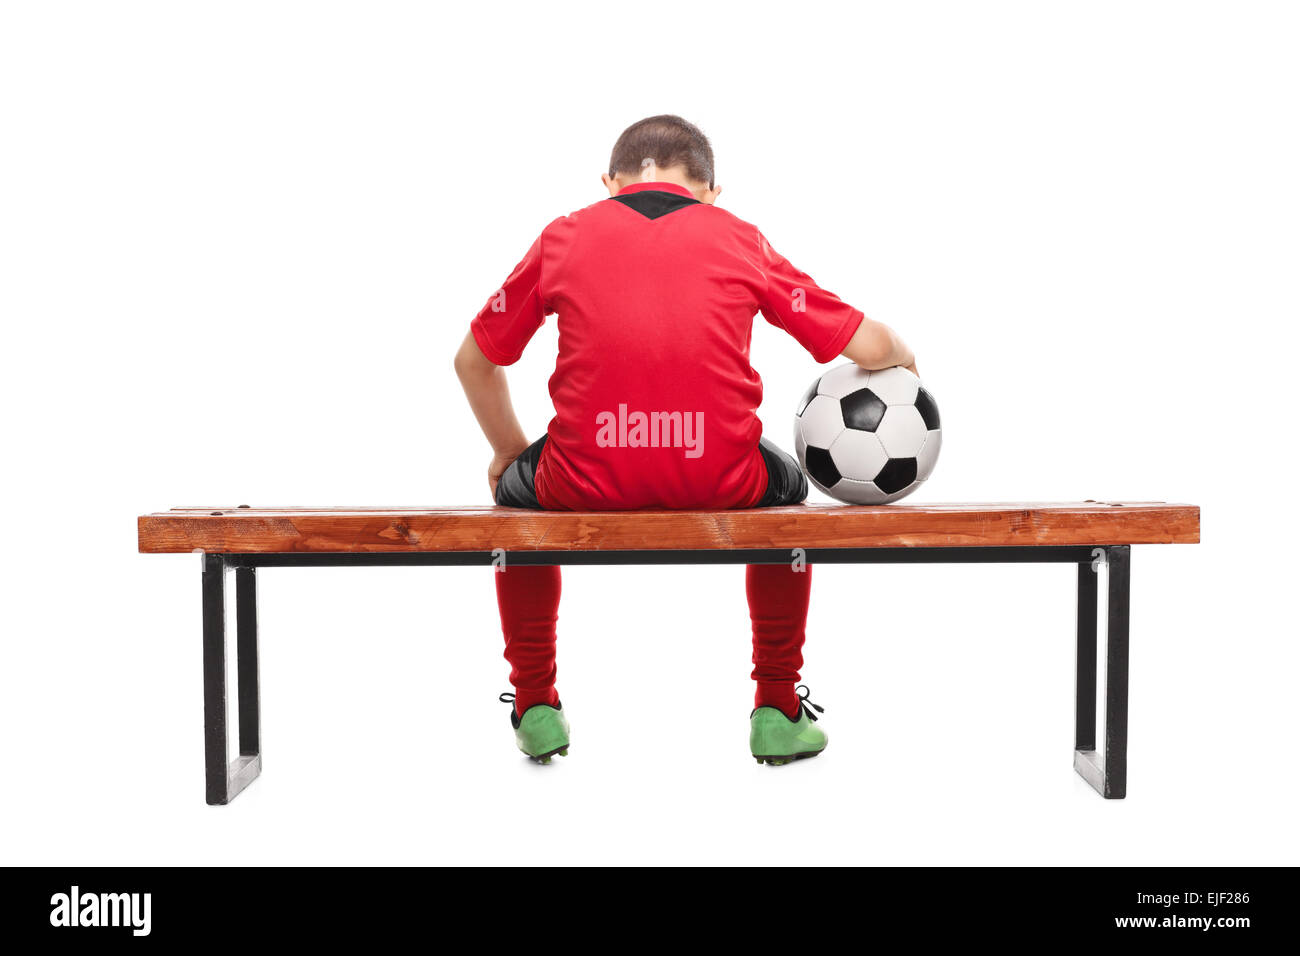 Rear view studio shot of a sad little boy in red soccer jersey seated on a bench and holding a ball isolated on - Stock Image